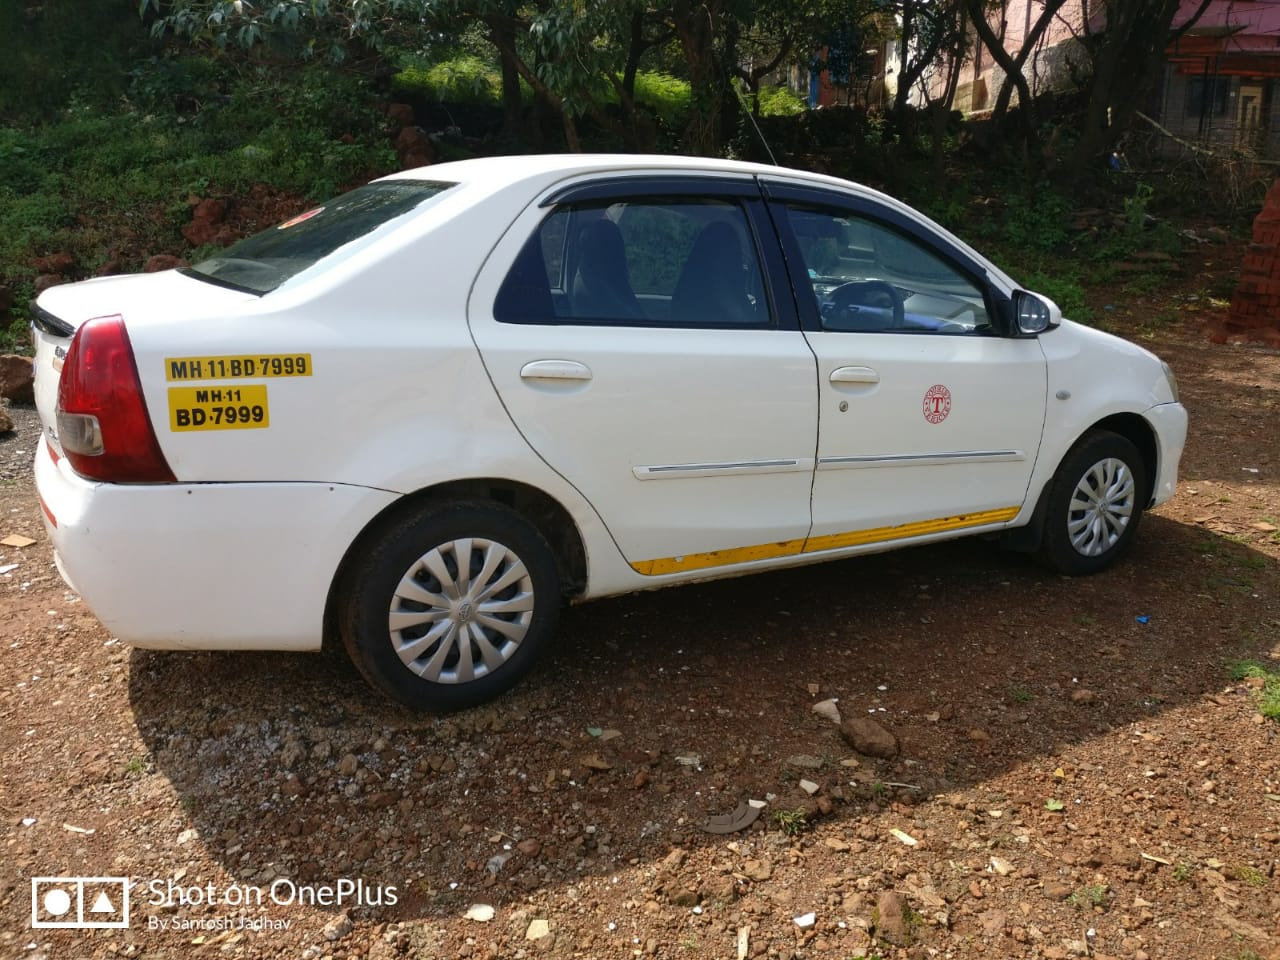 Cab/Taxi Services